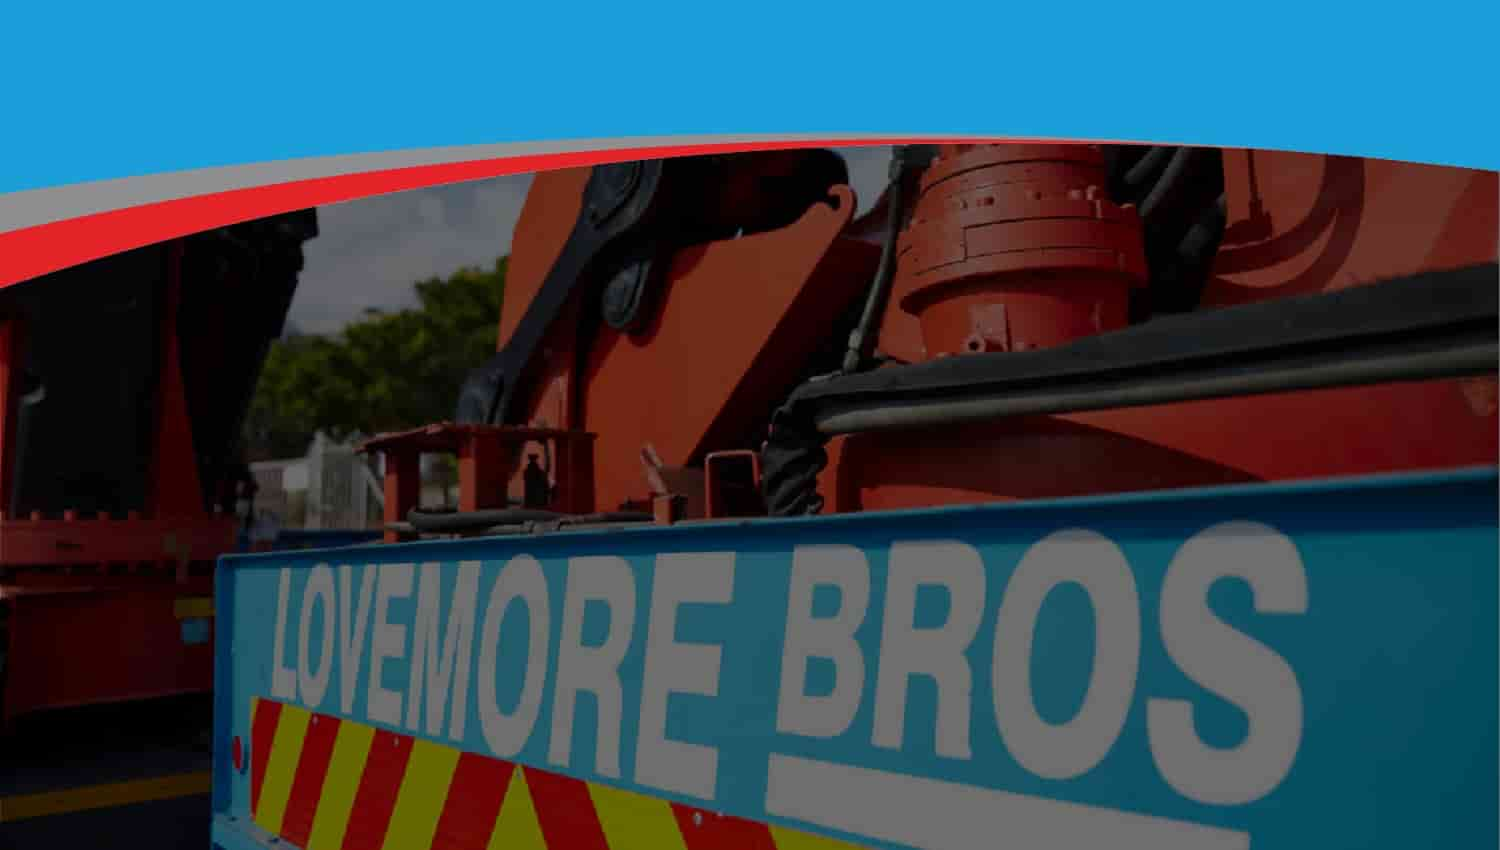 Lovemore Bros Machine Movers and Riggers